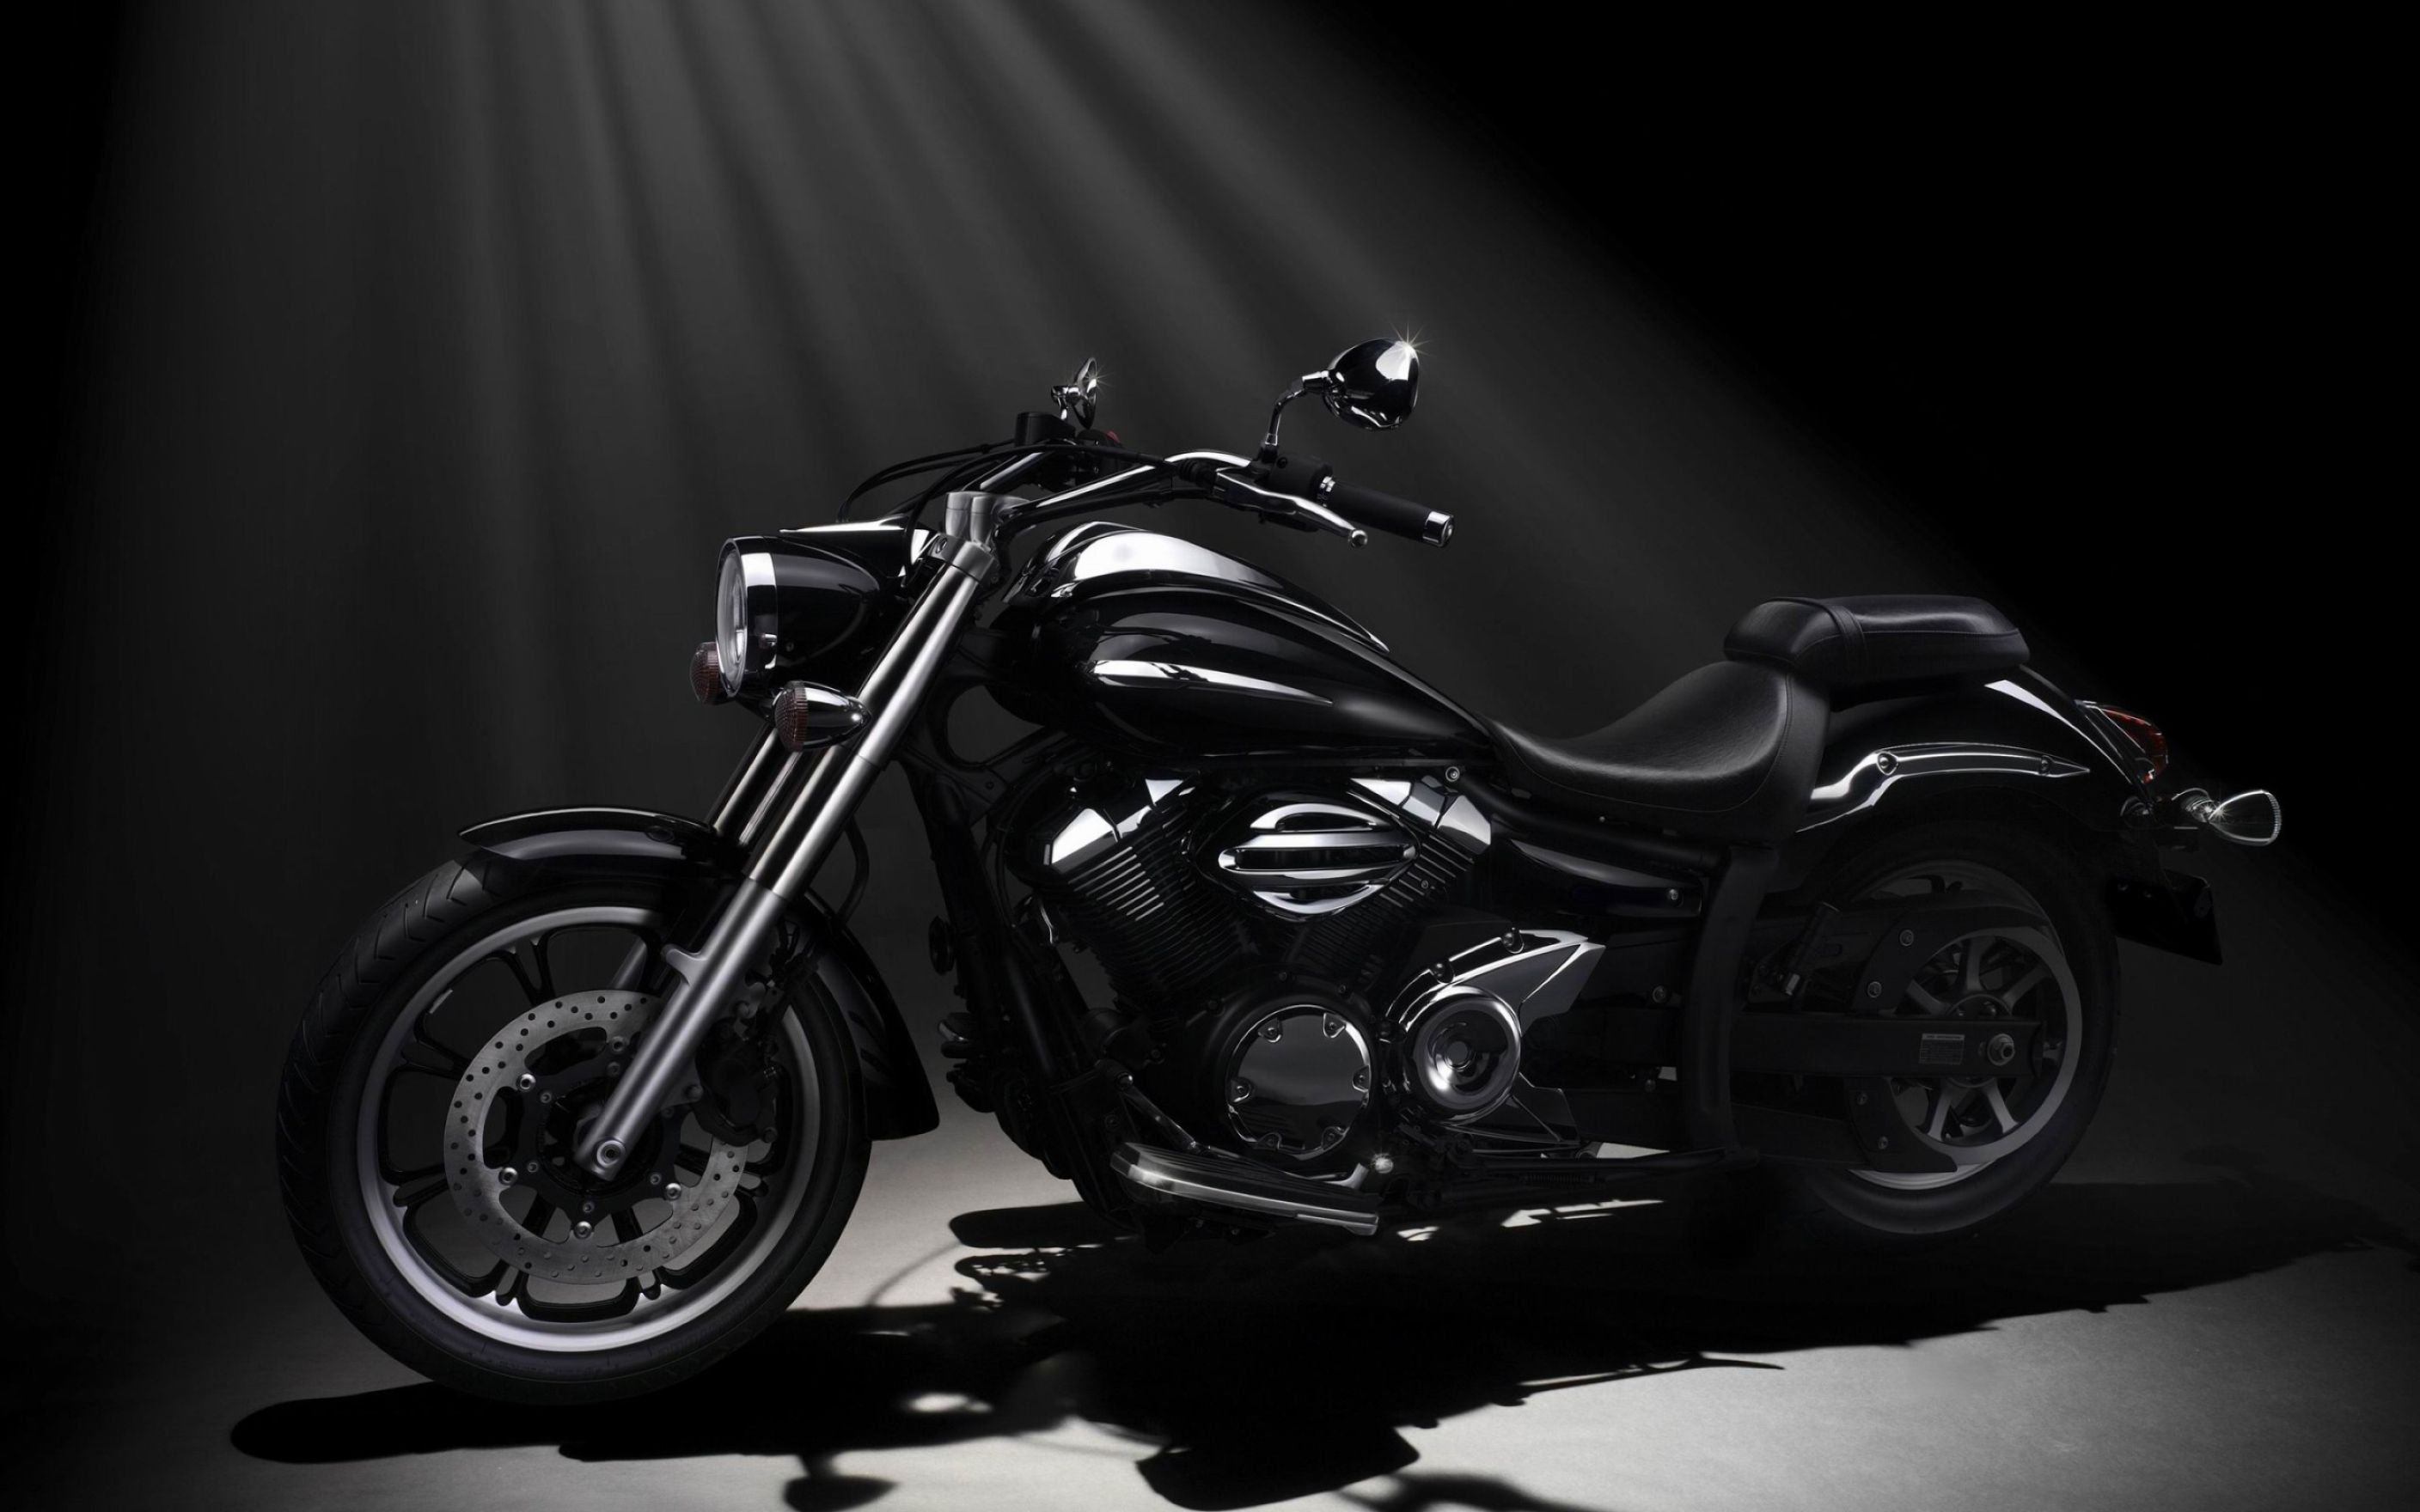 Download free HD Yamaha Wallpaper, image